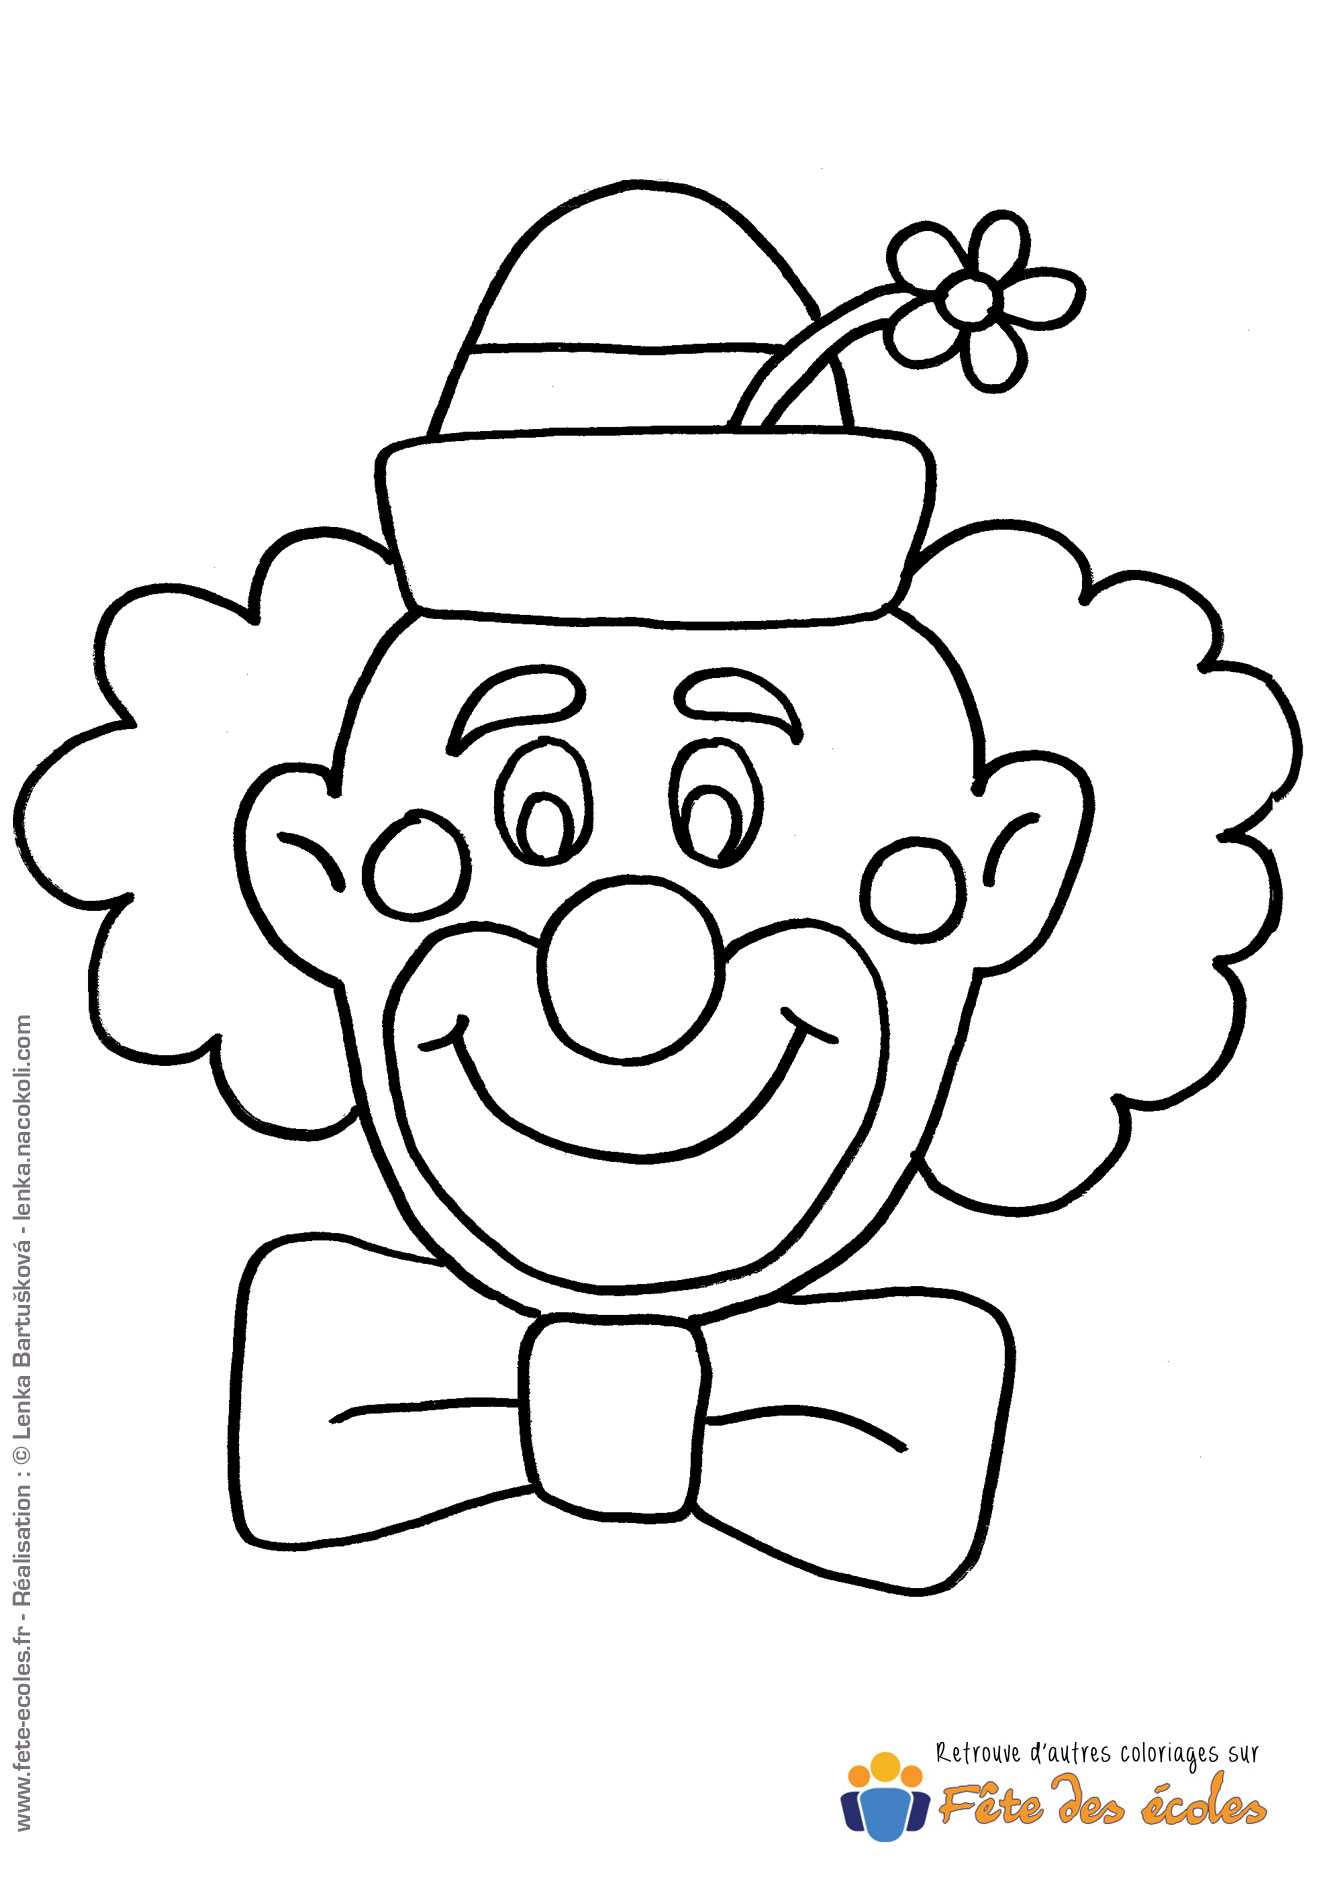 Coloriage Clown Voiture.Coloriage Tete De Clown